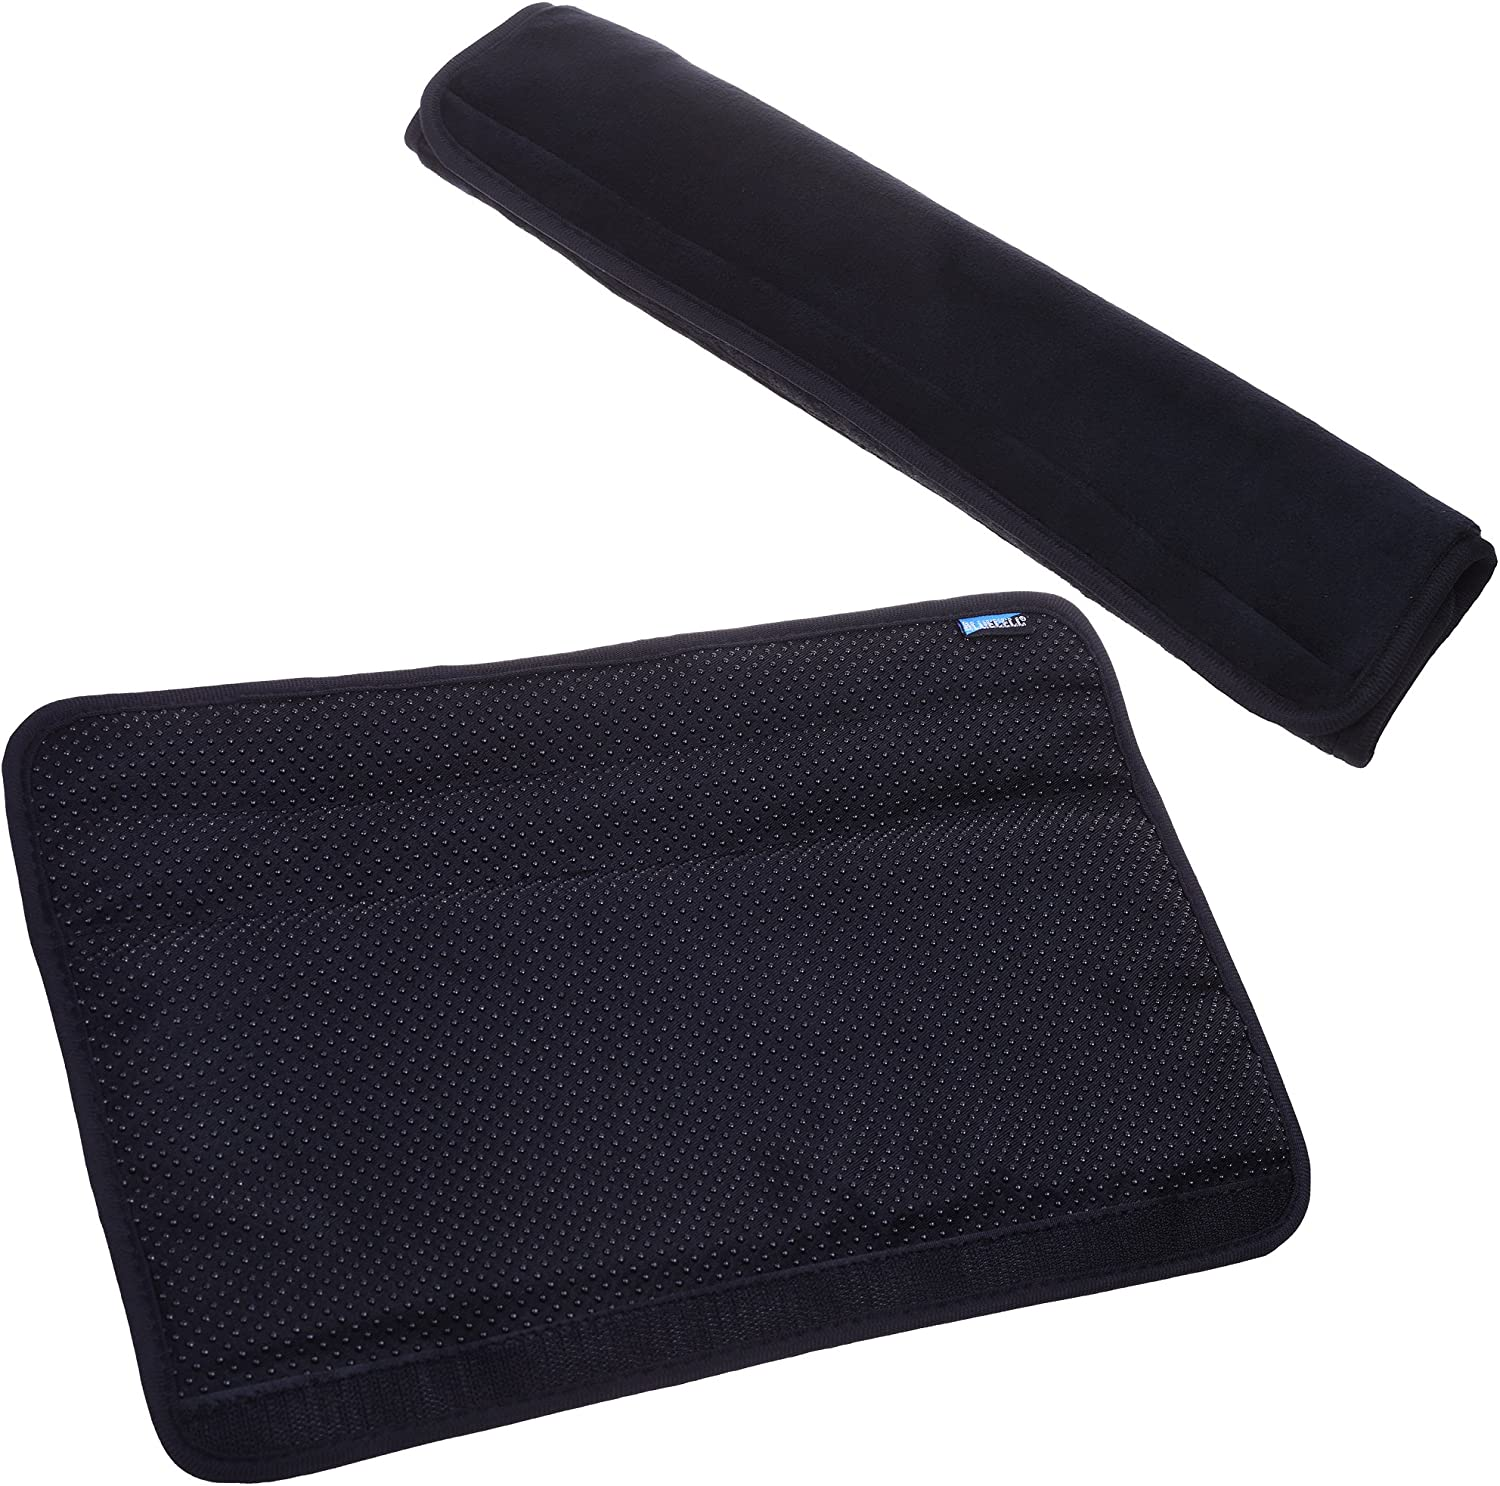 BCP 2pcs Black Color Adjustable Soft Comfortable Velvet Chair Armrest Covers Protectors for Home, Office